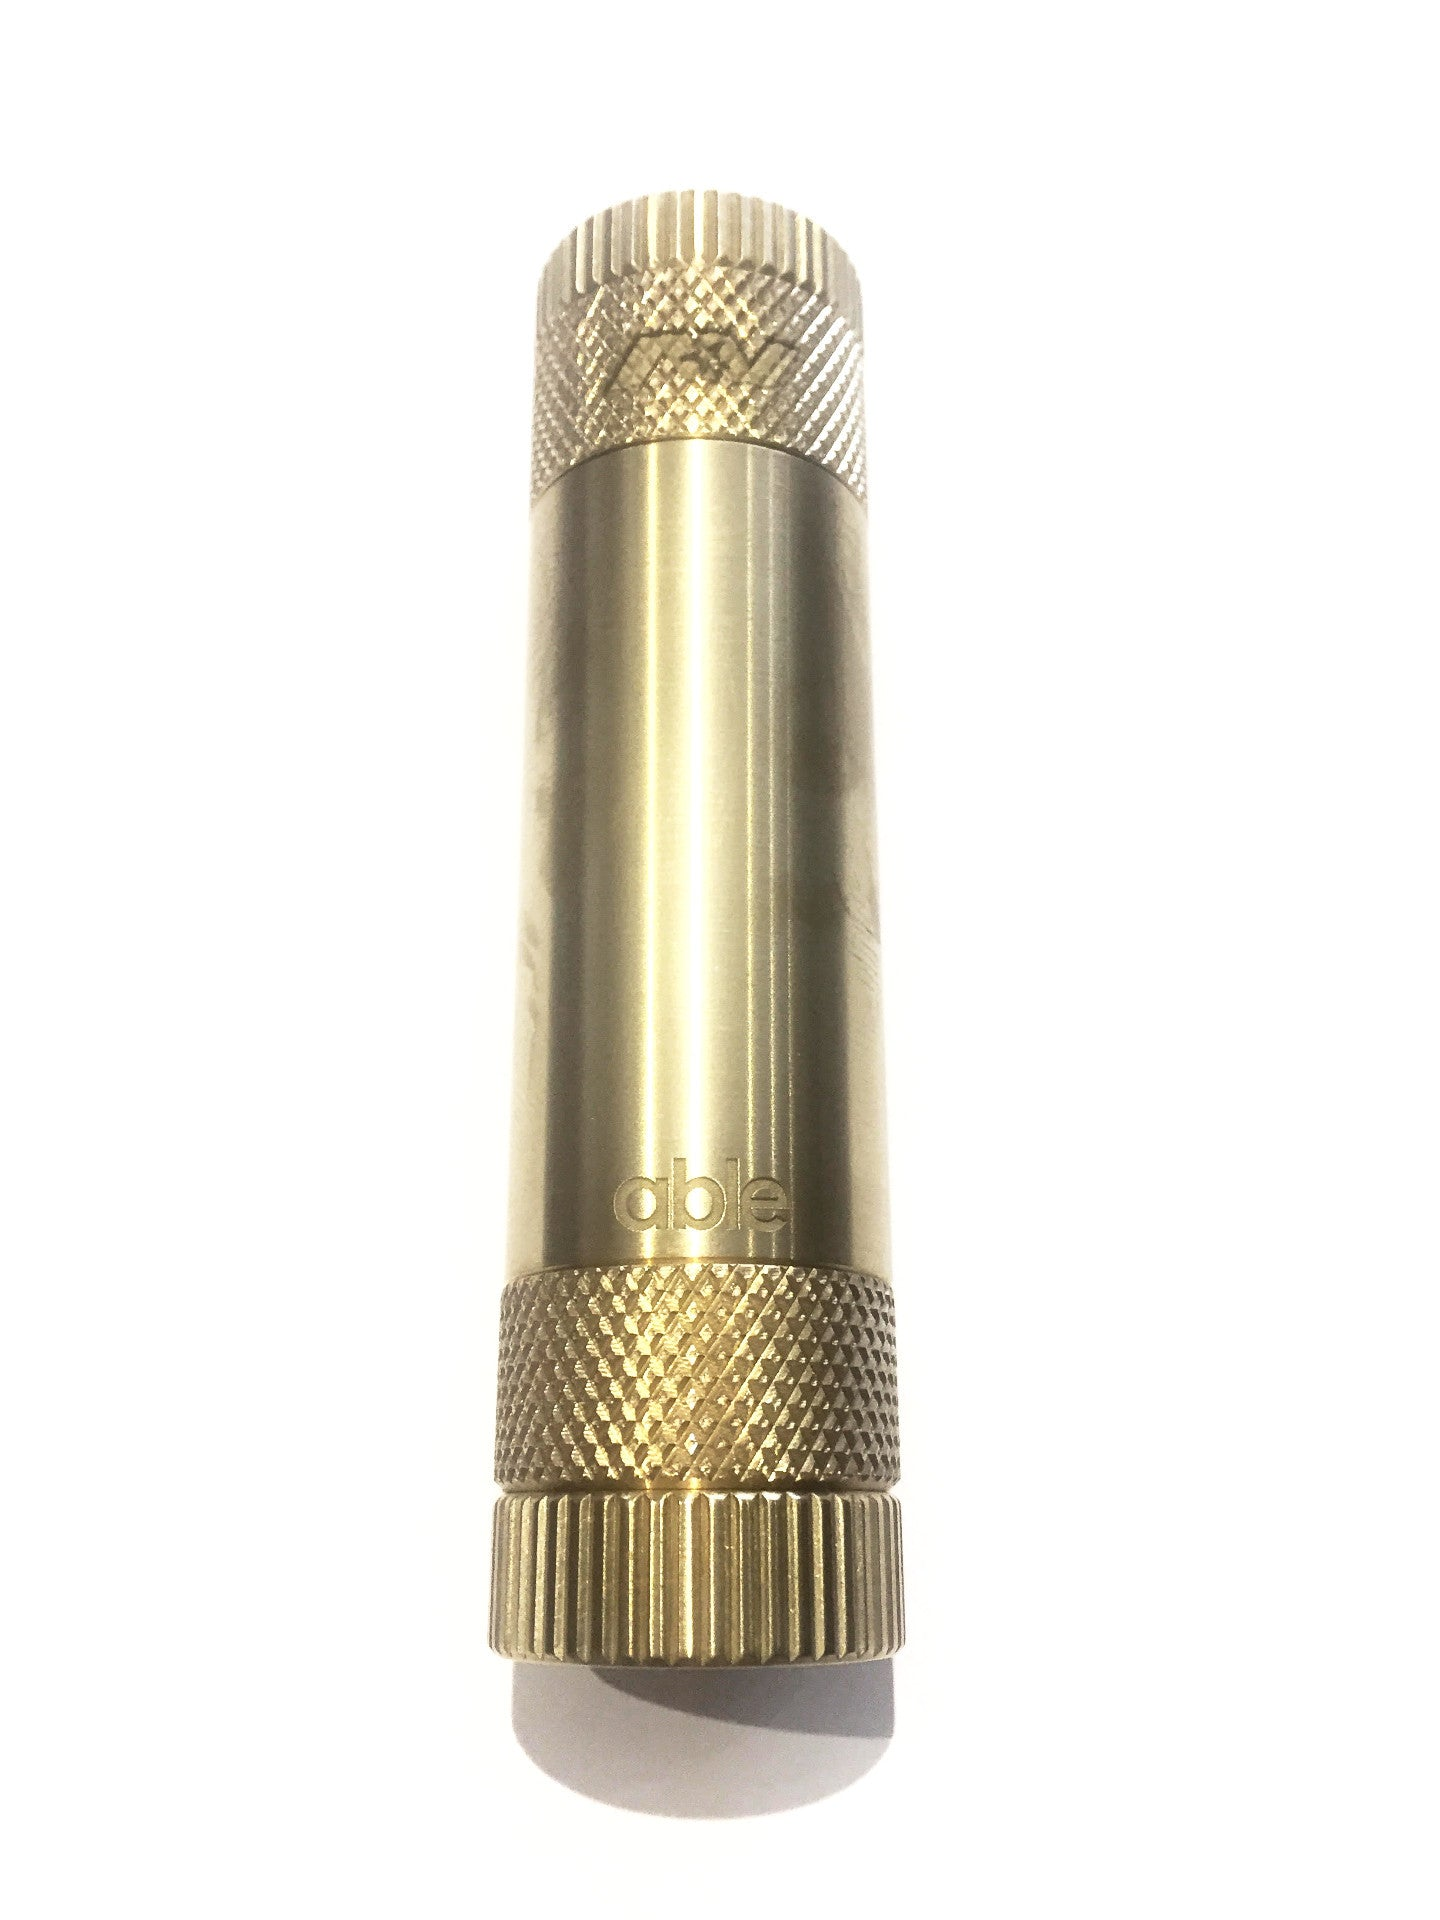 Able XL Mech Mod by Avid Lyfe - IN2VAPES